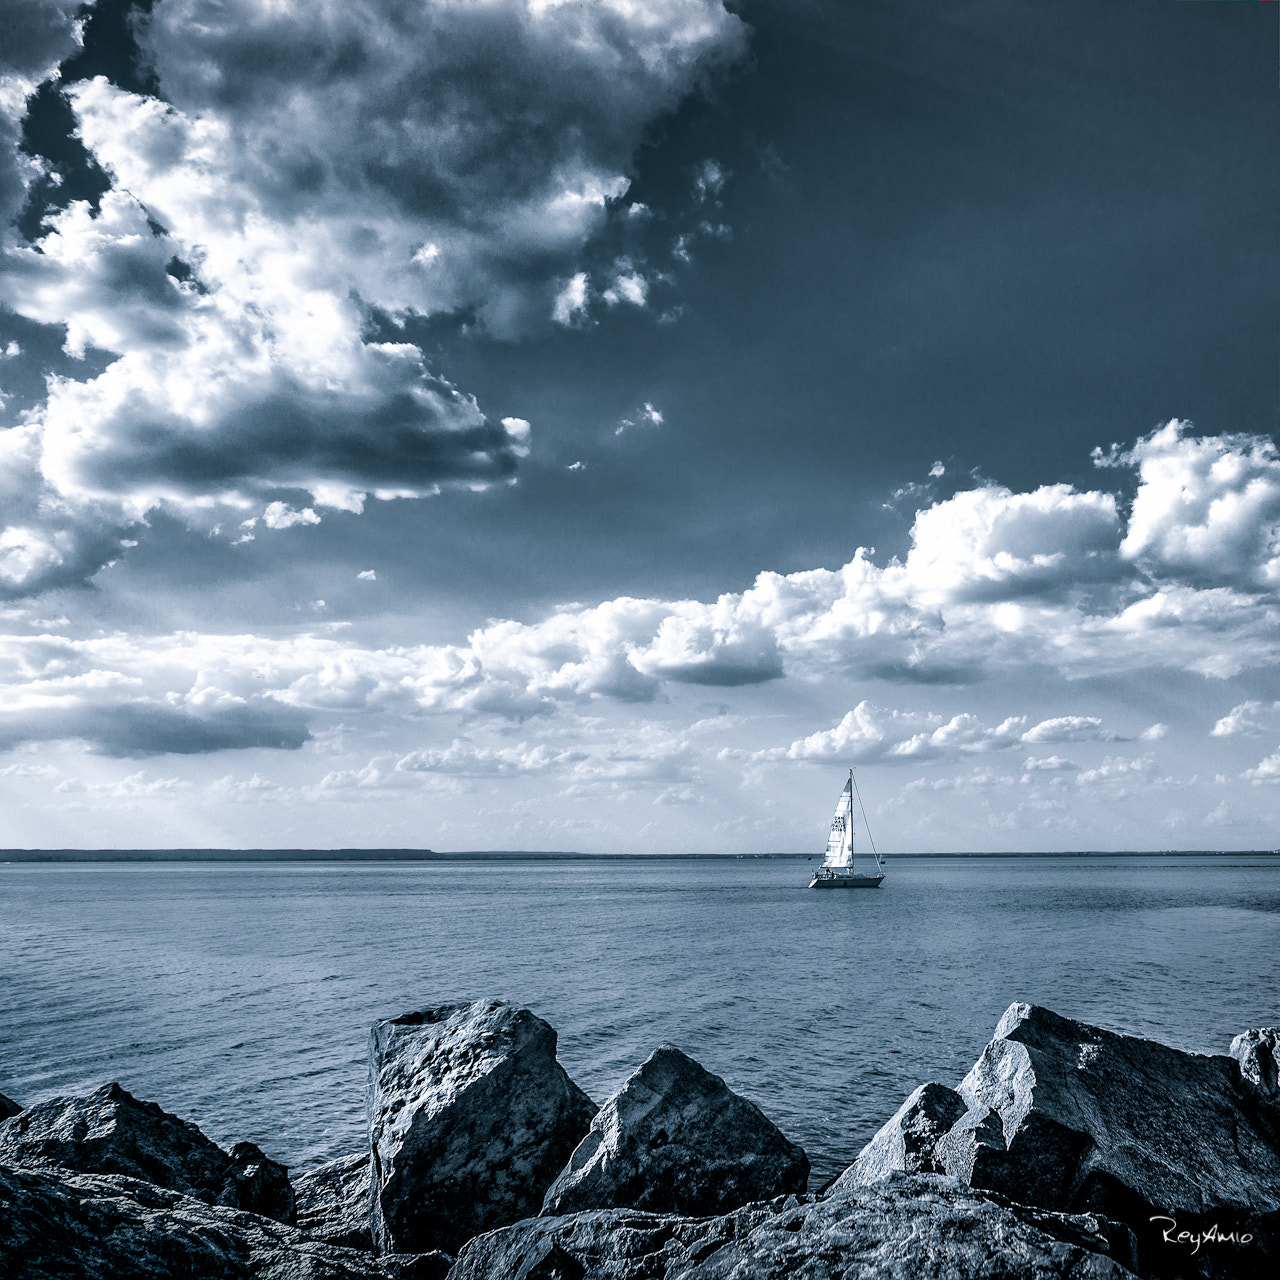 Photograph Sailing by Rey Amio on 500px